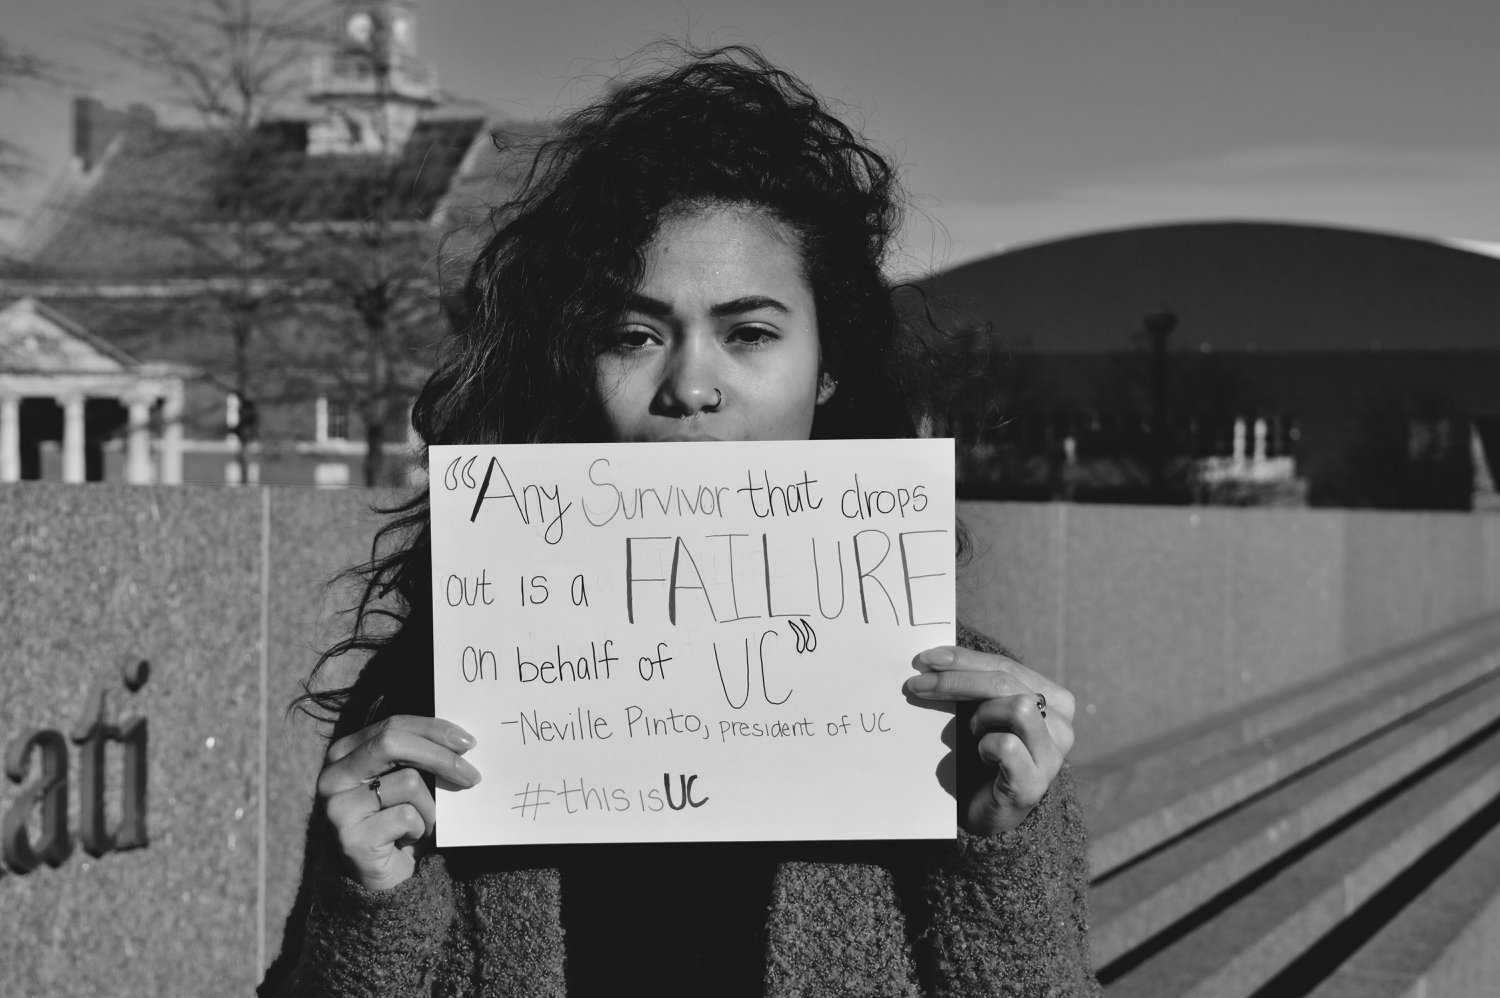 Photos provided by Students for Survivors.